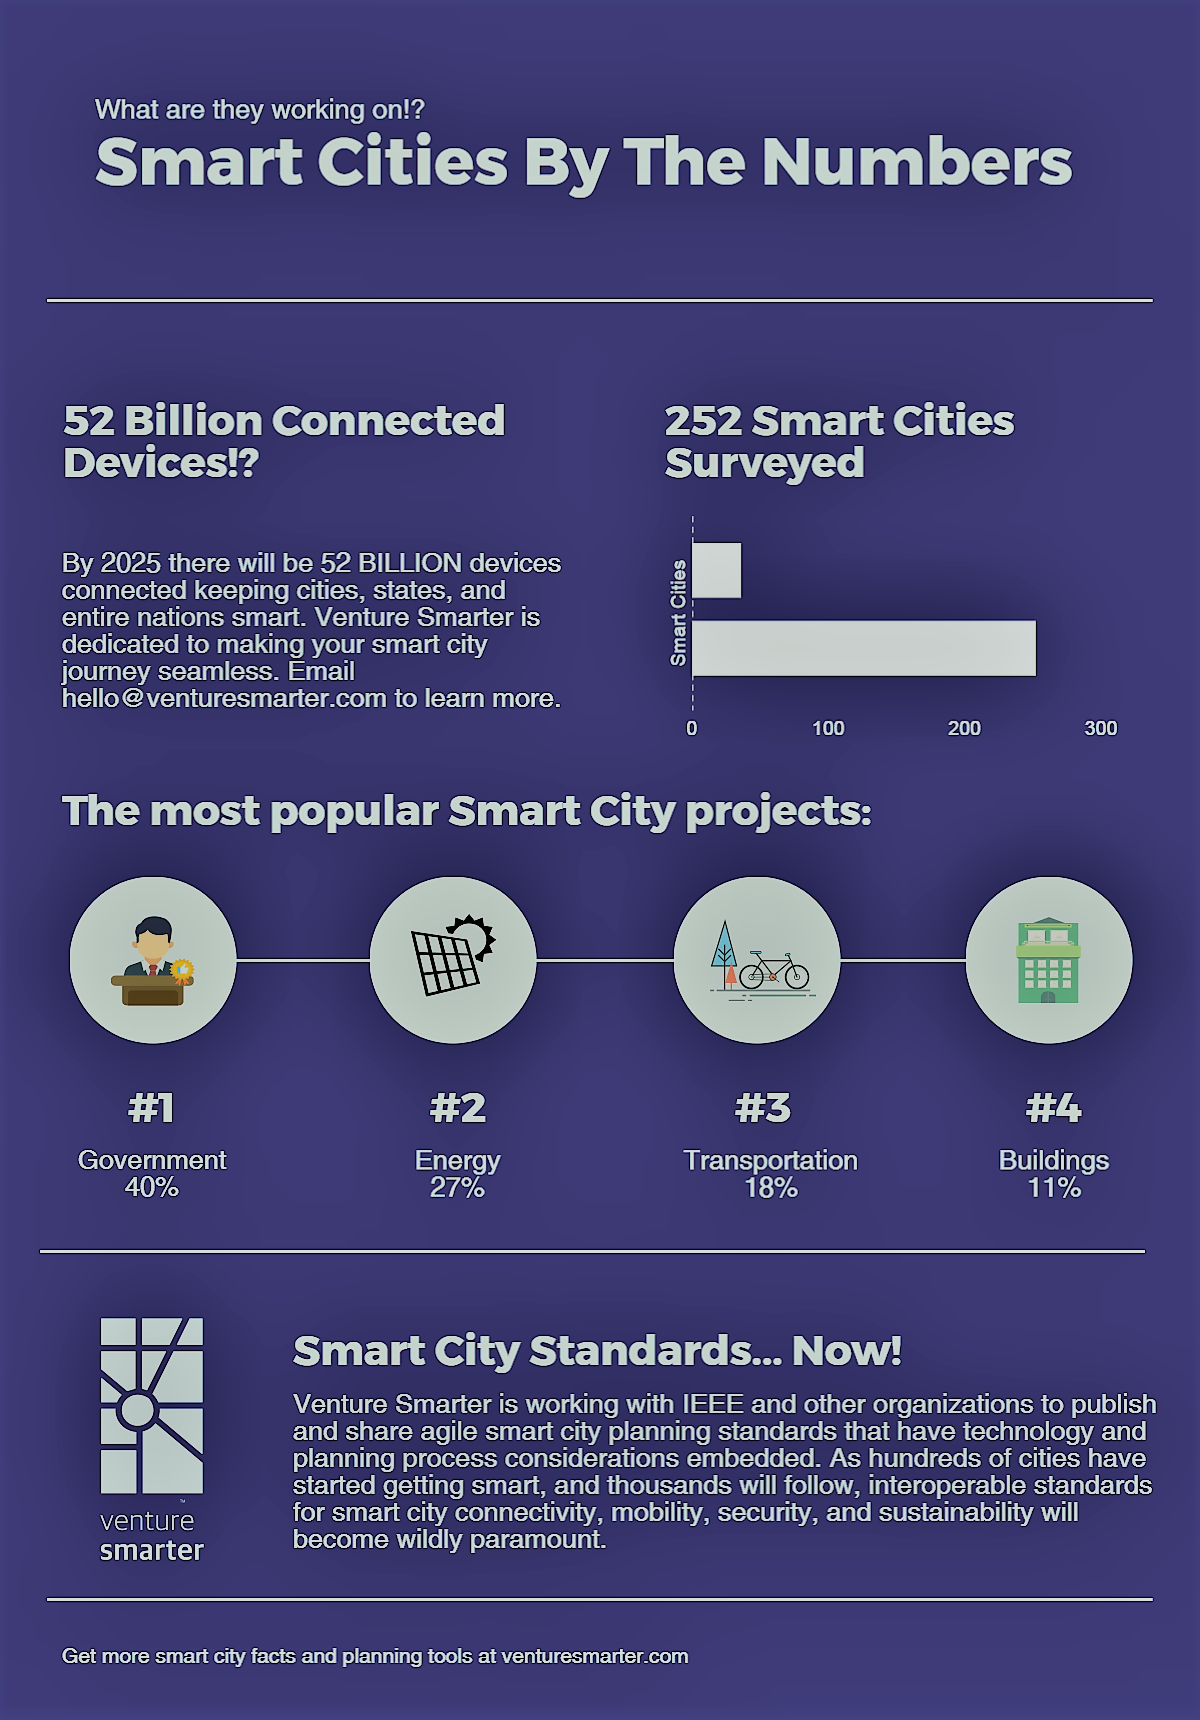 Venture Smarter Smart Cities Infographic Smart City Projects By The Numbers